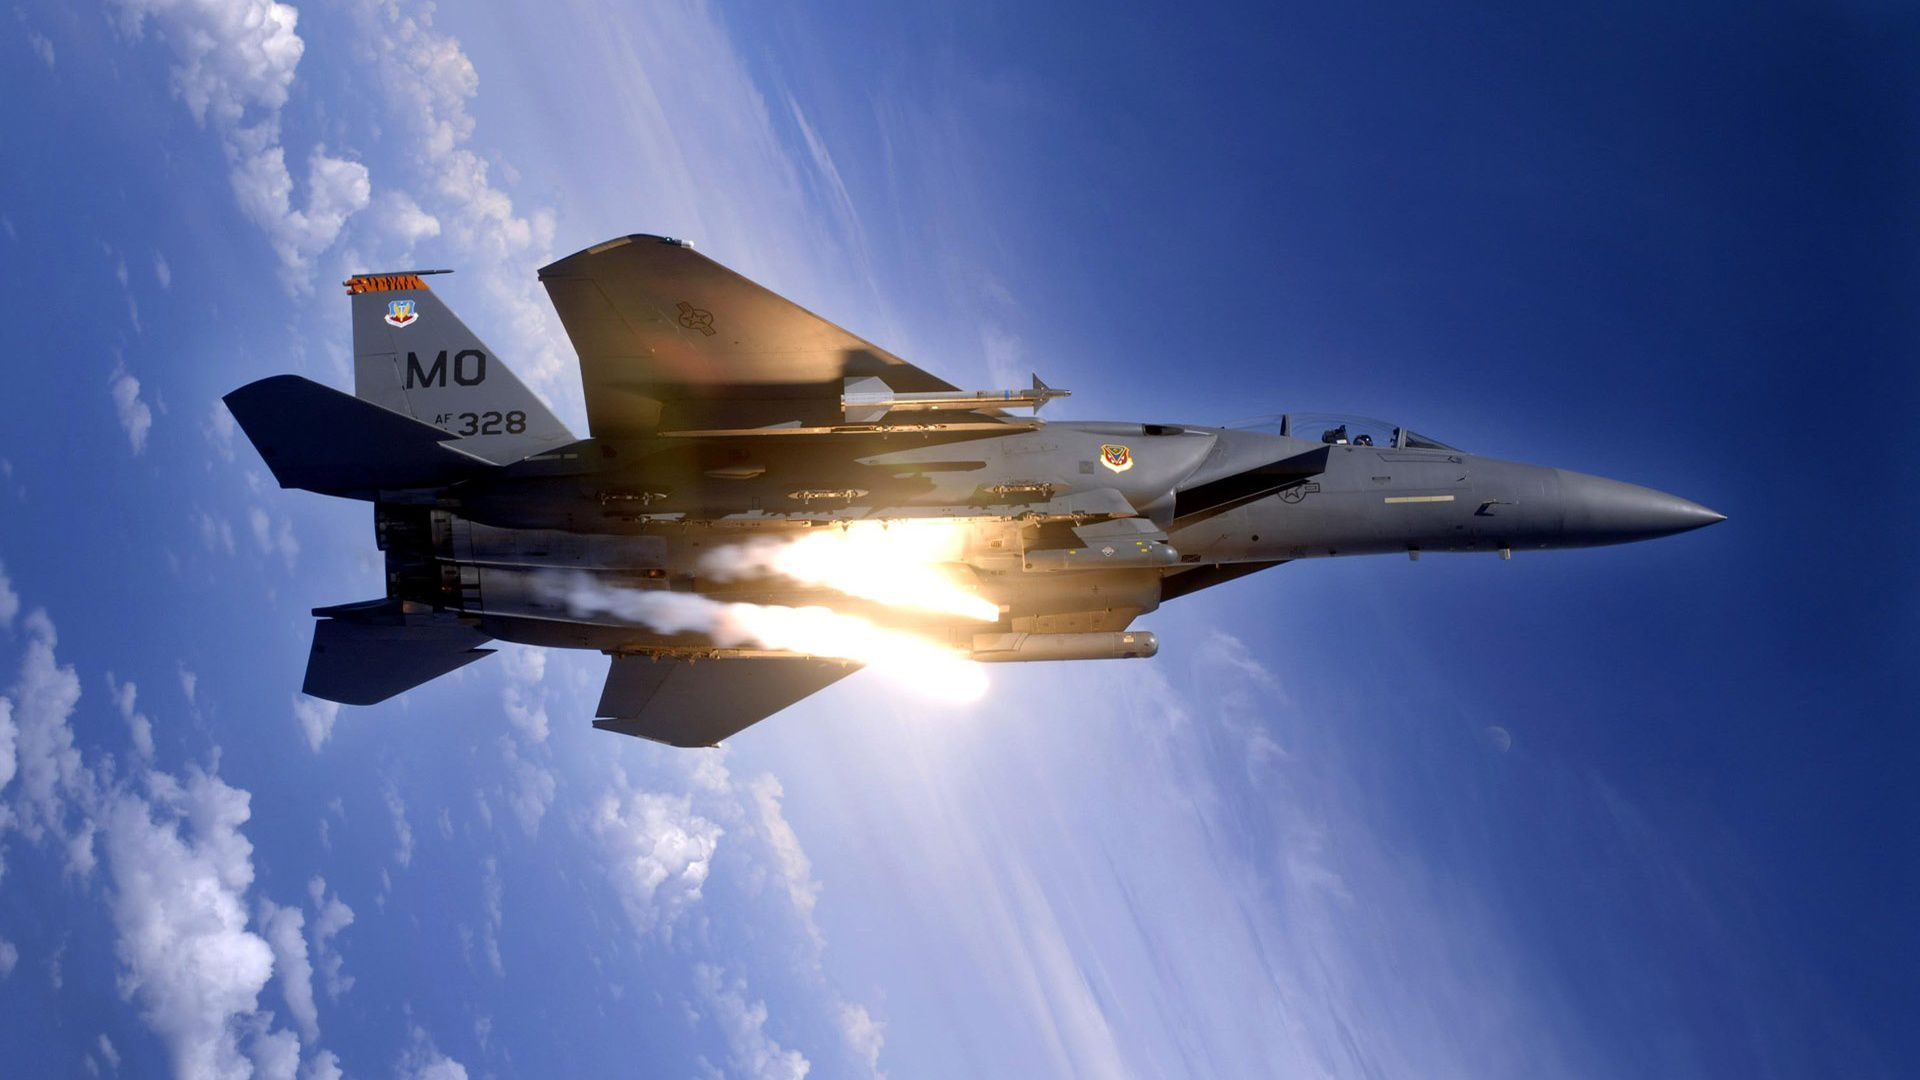 F15 Eagle Computer Background Tech Fighter jets Airplane 1920x1080